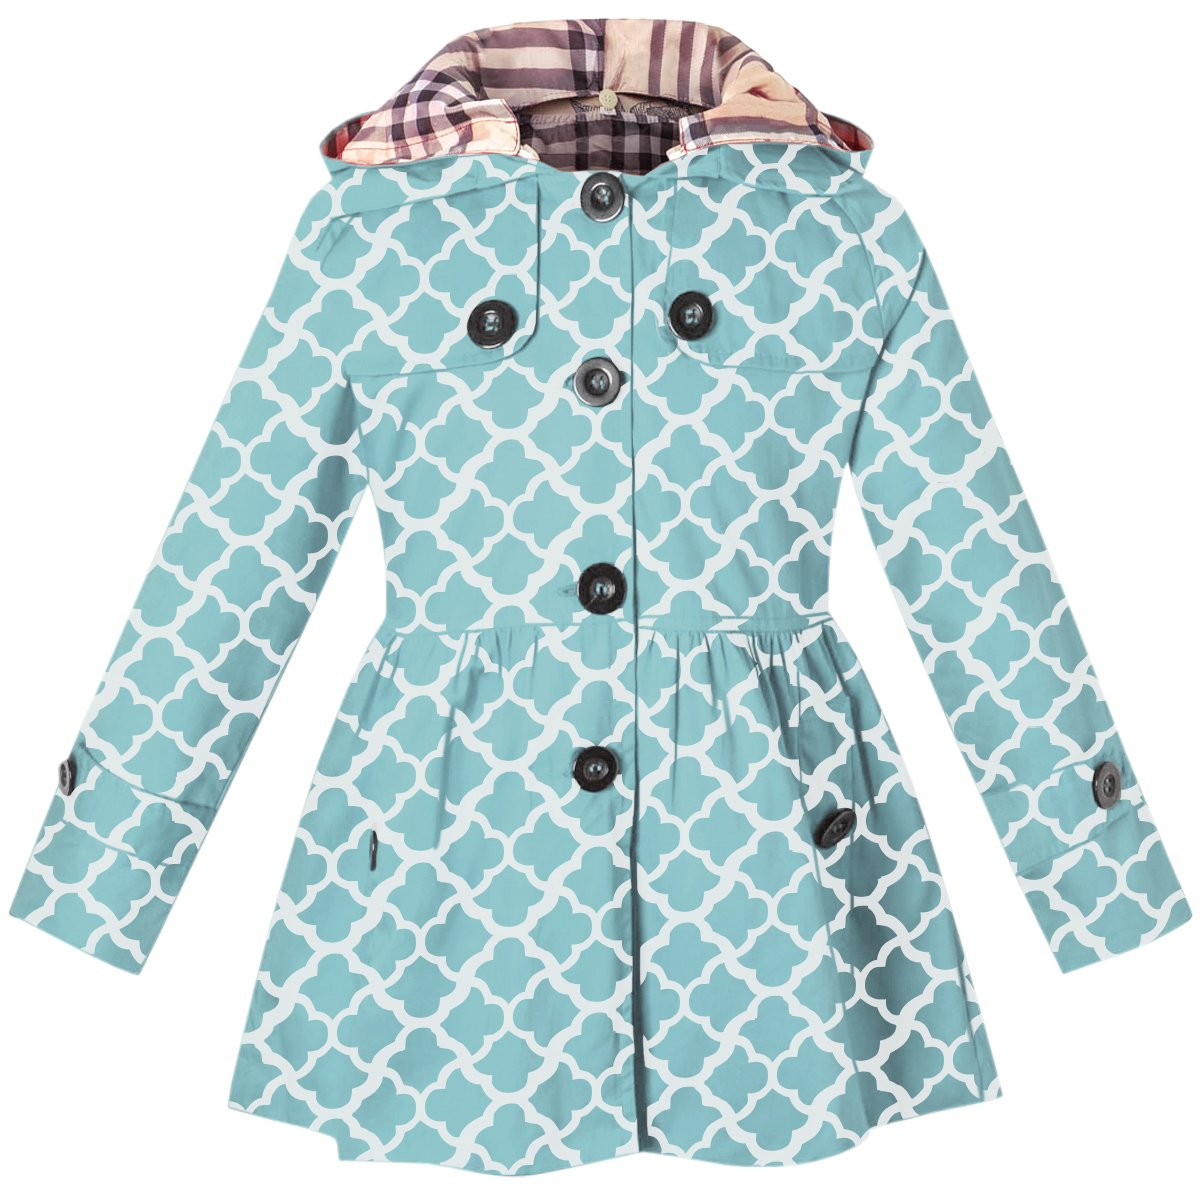 Kids Girls Hooded Trench Dress Coat, Hoodie Jacket for Big Girls, Geometry Print Blue, 10-11 Years=Tag 160